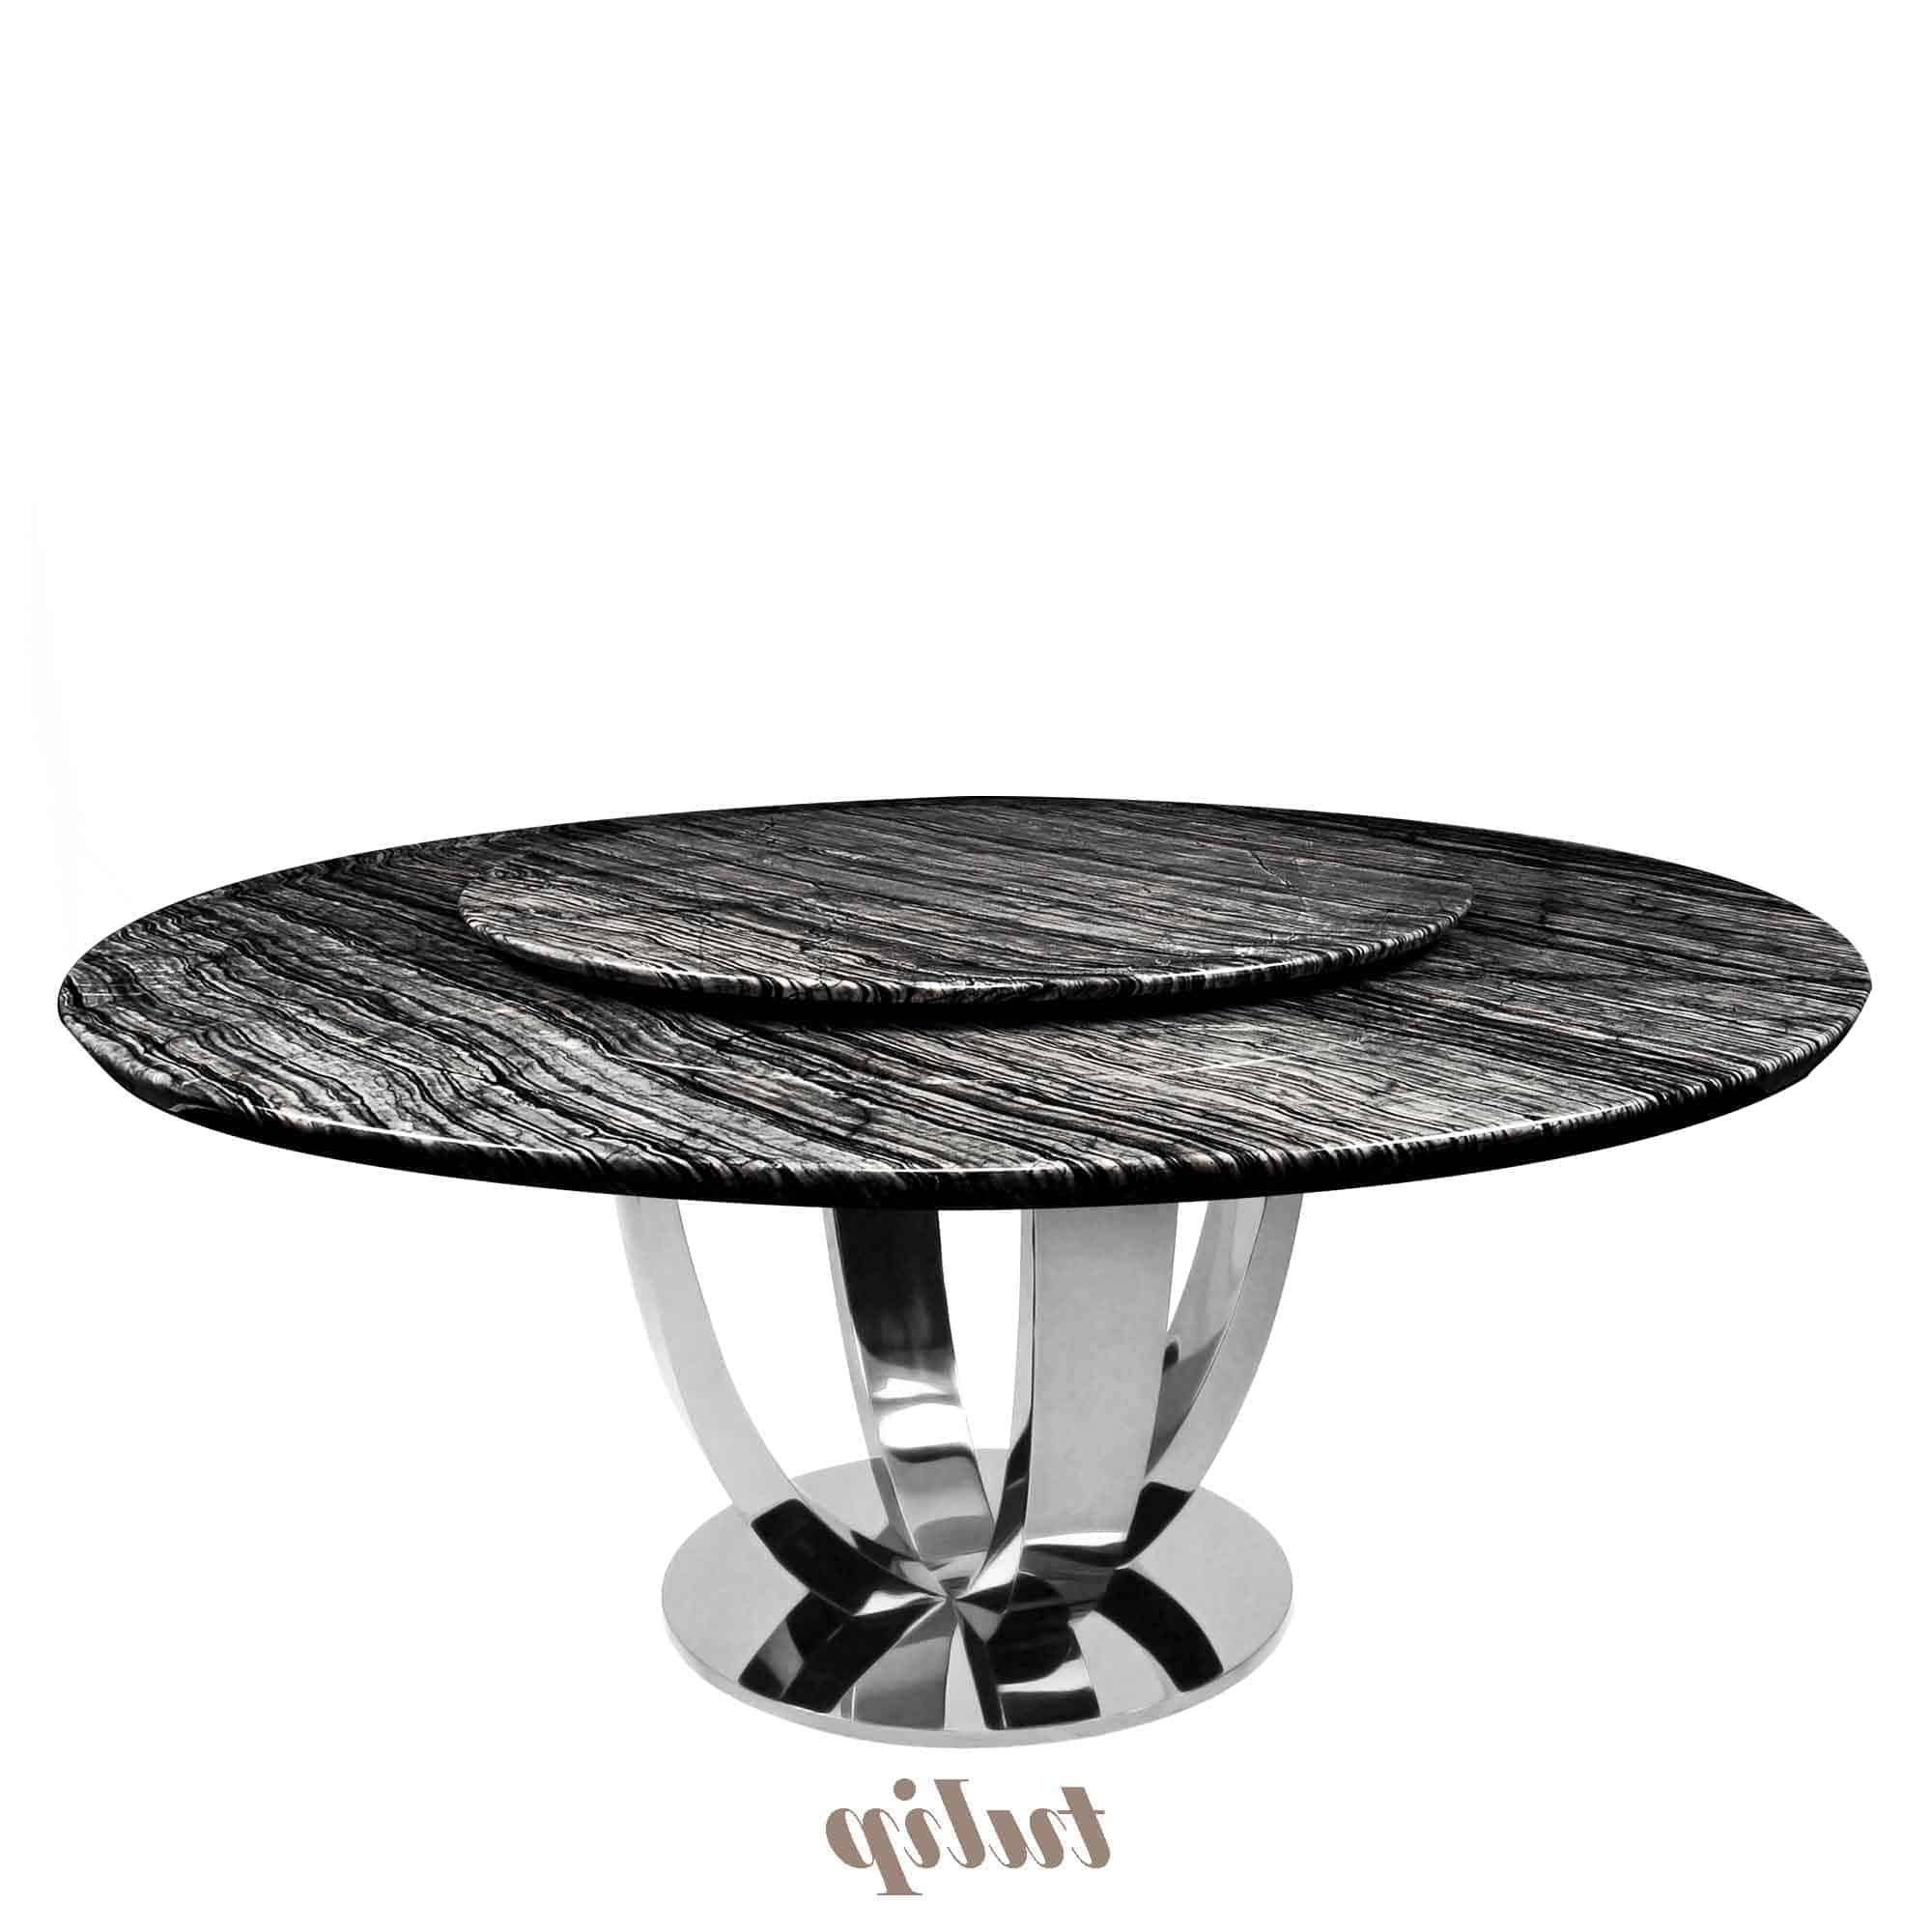 Decasa Round Marble Dining Table Antique Wood Intended For Fashionable Antique Black Wood Kitchen Dining Tables (View 28 of 30)